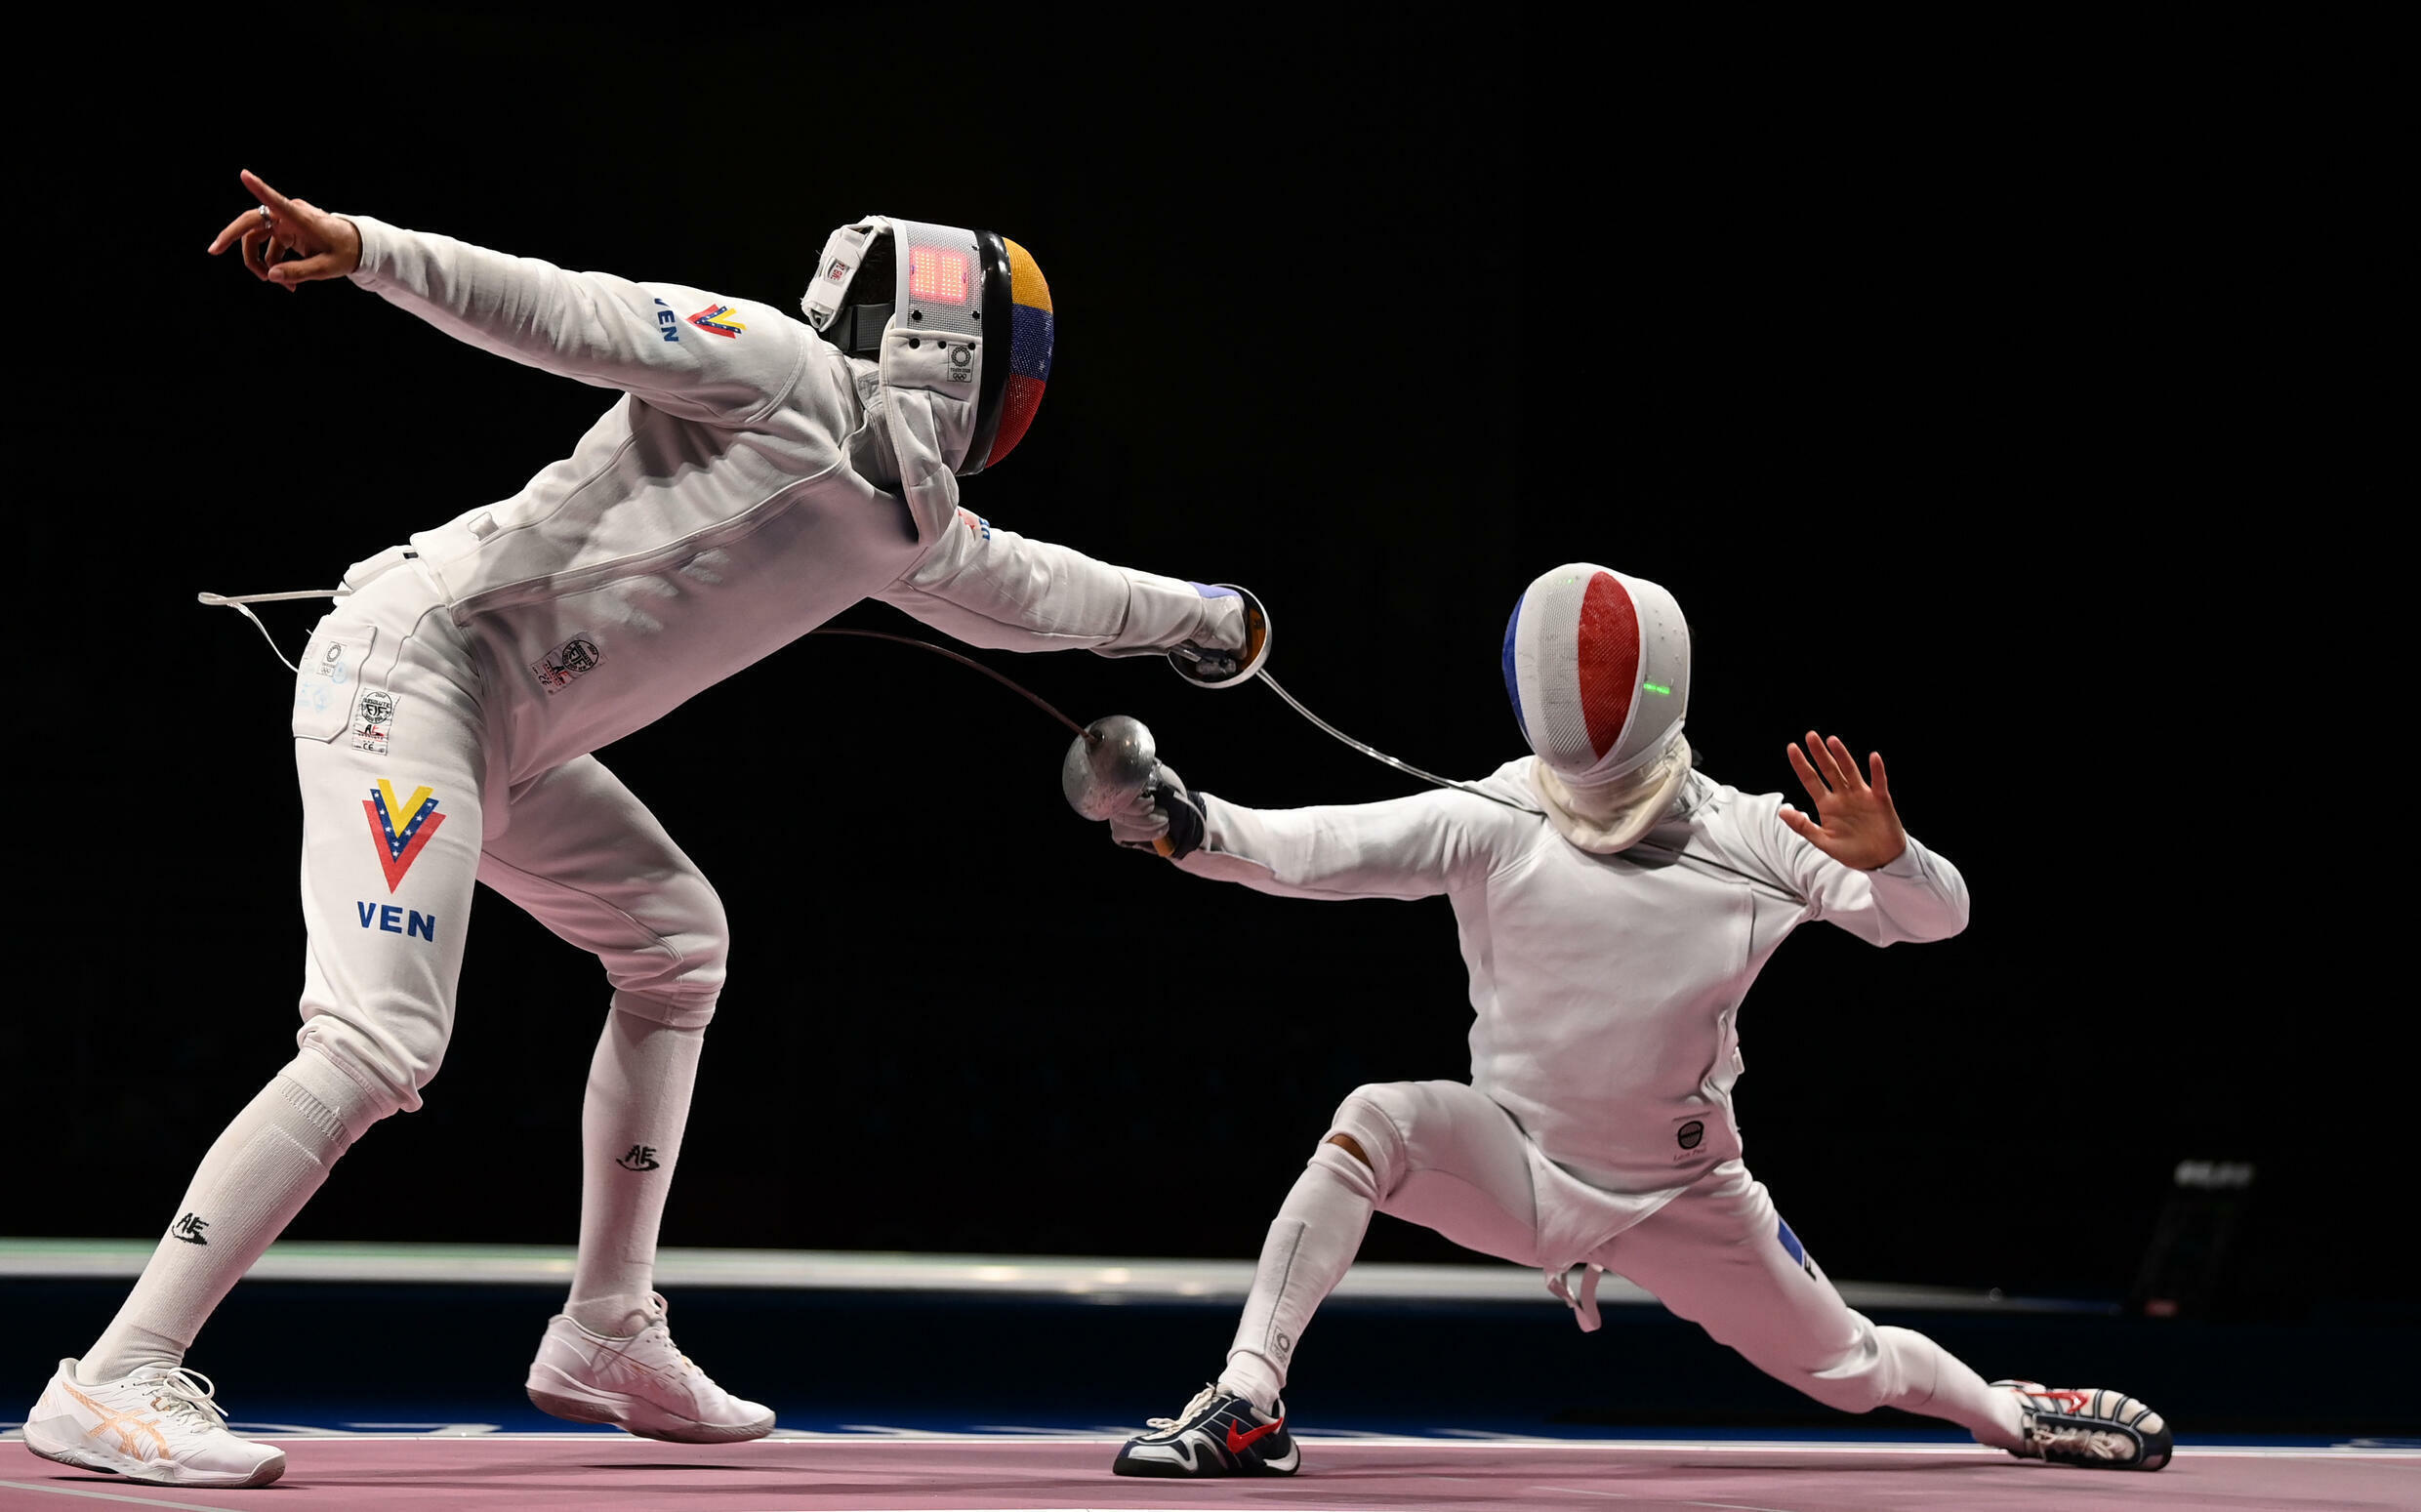 Venezuelan Rubén Limardo Gascon competes against France's Romain Cannone in the men's individual sword qualification fight, during the Tokyo 2020 Games, at the Makuhari Messe Hall in Chiba city, Chiba prefecture, Japan, on July 25, 2021.